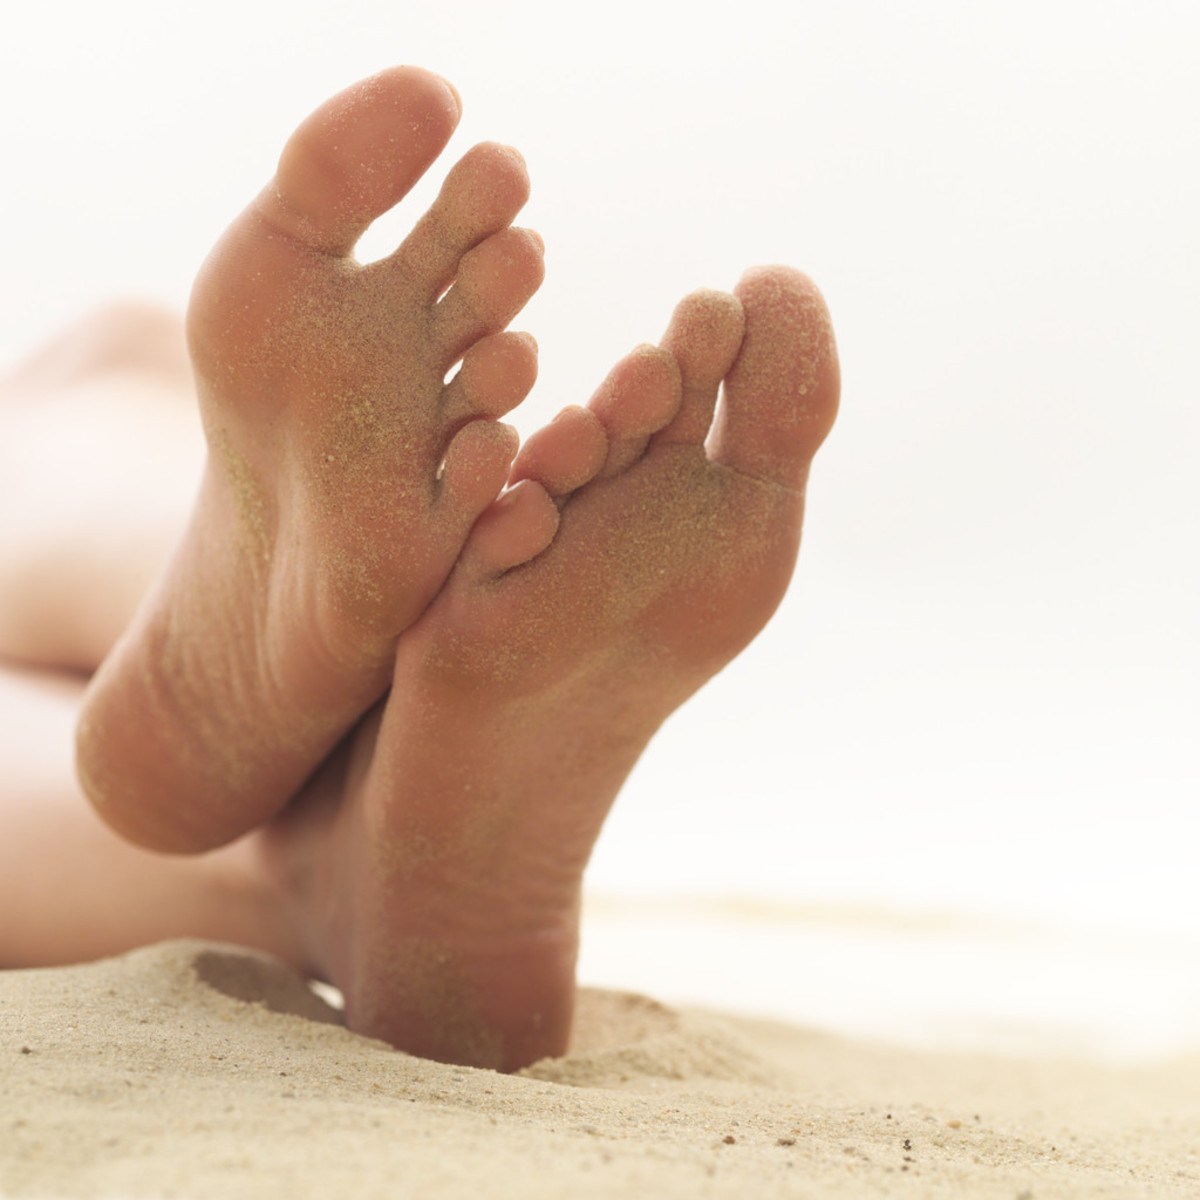 Cramp is very common in pregnancy and affects your legs and feet